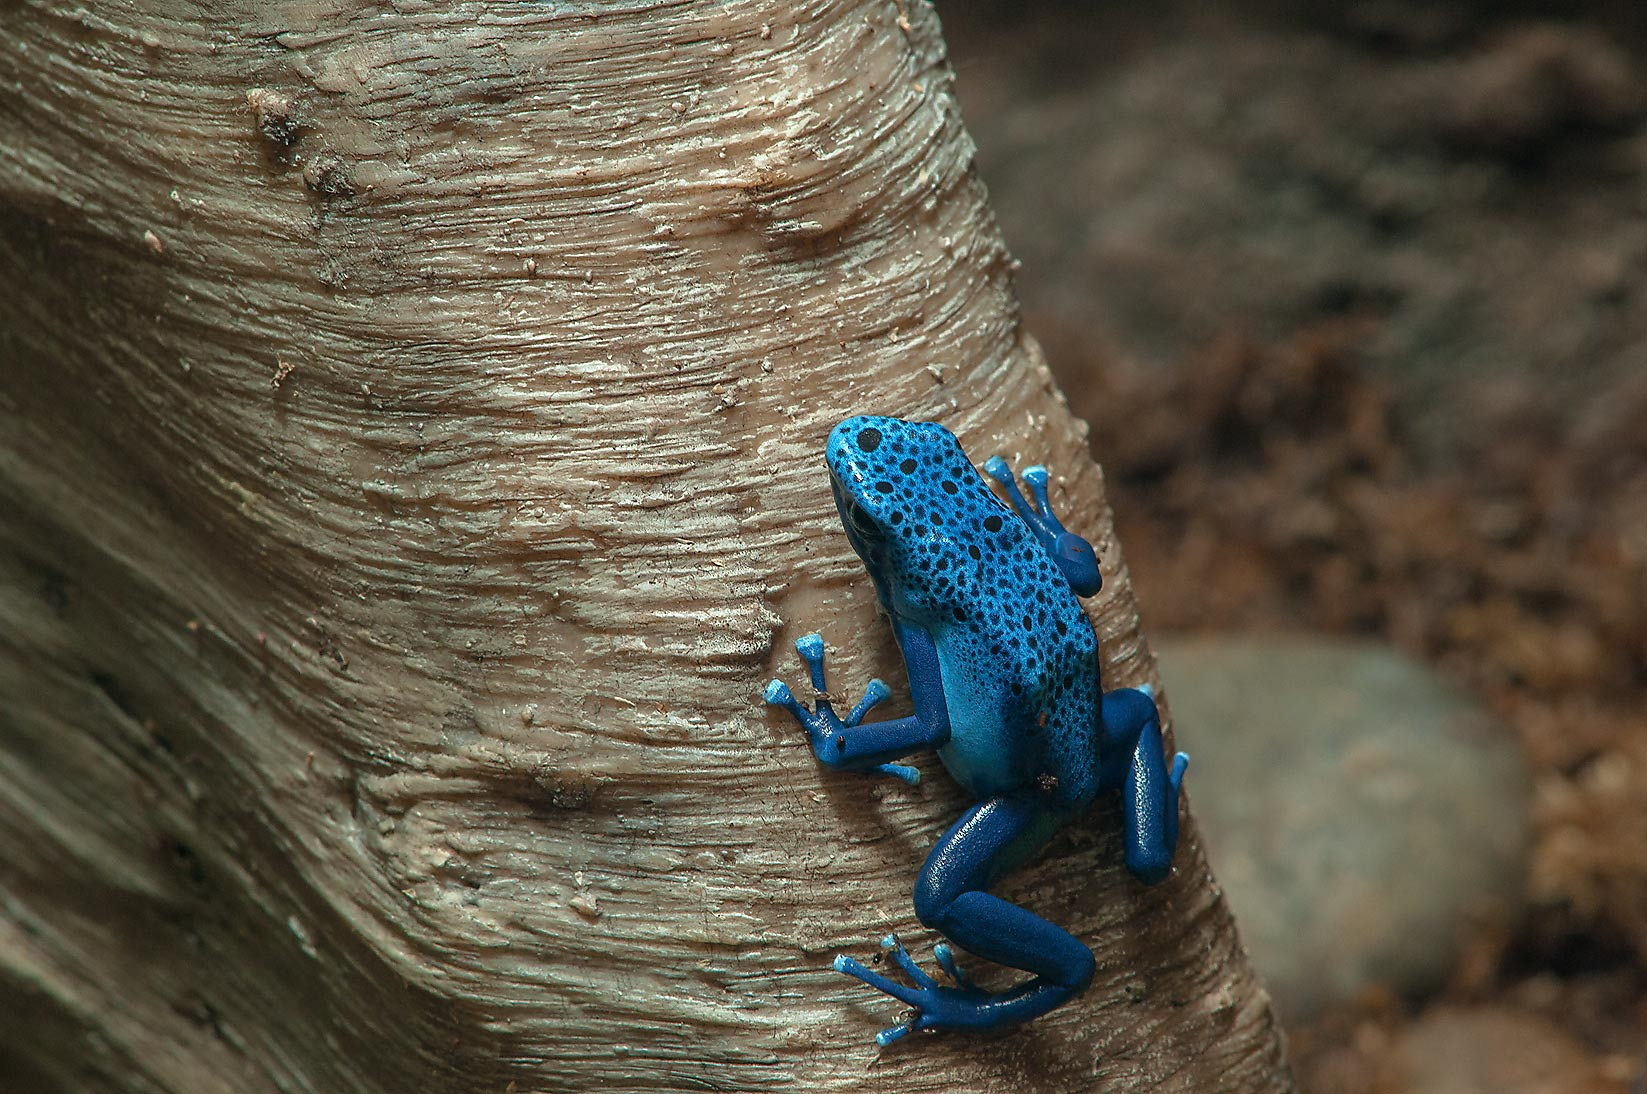 Blue tree frog in Rainforest Pyramid of Moody Gardens. Galveston, Texas